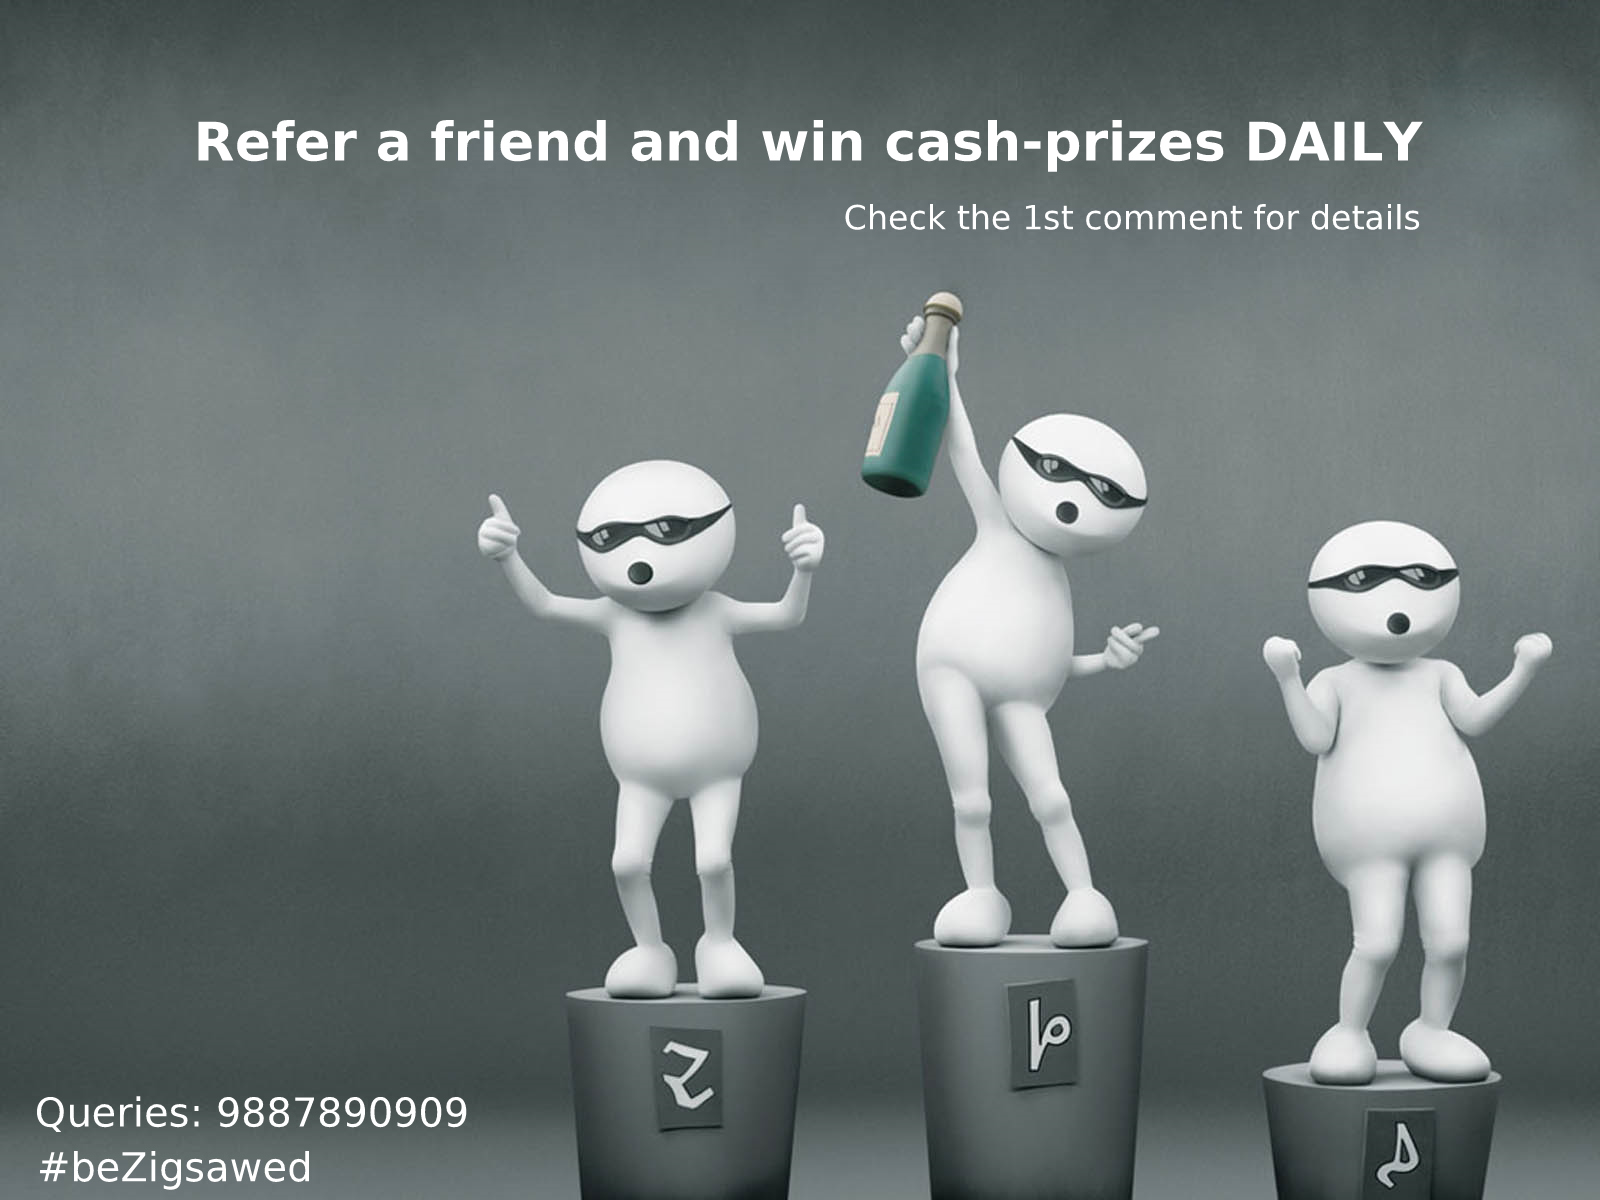 Refer your friends and win referral incentives